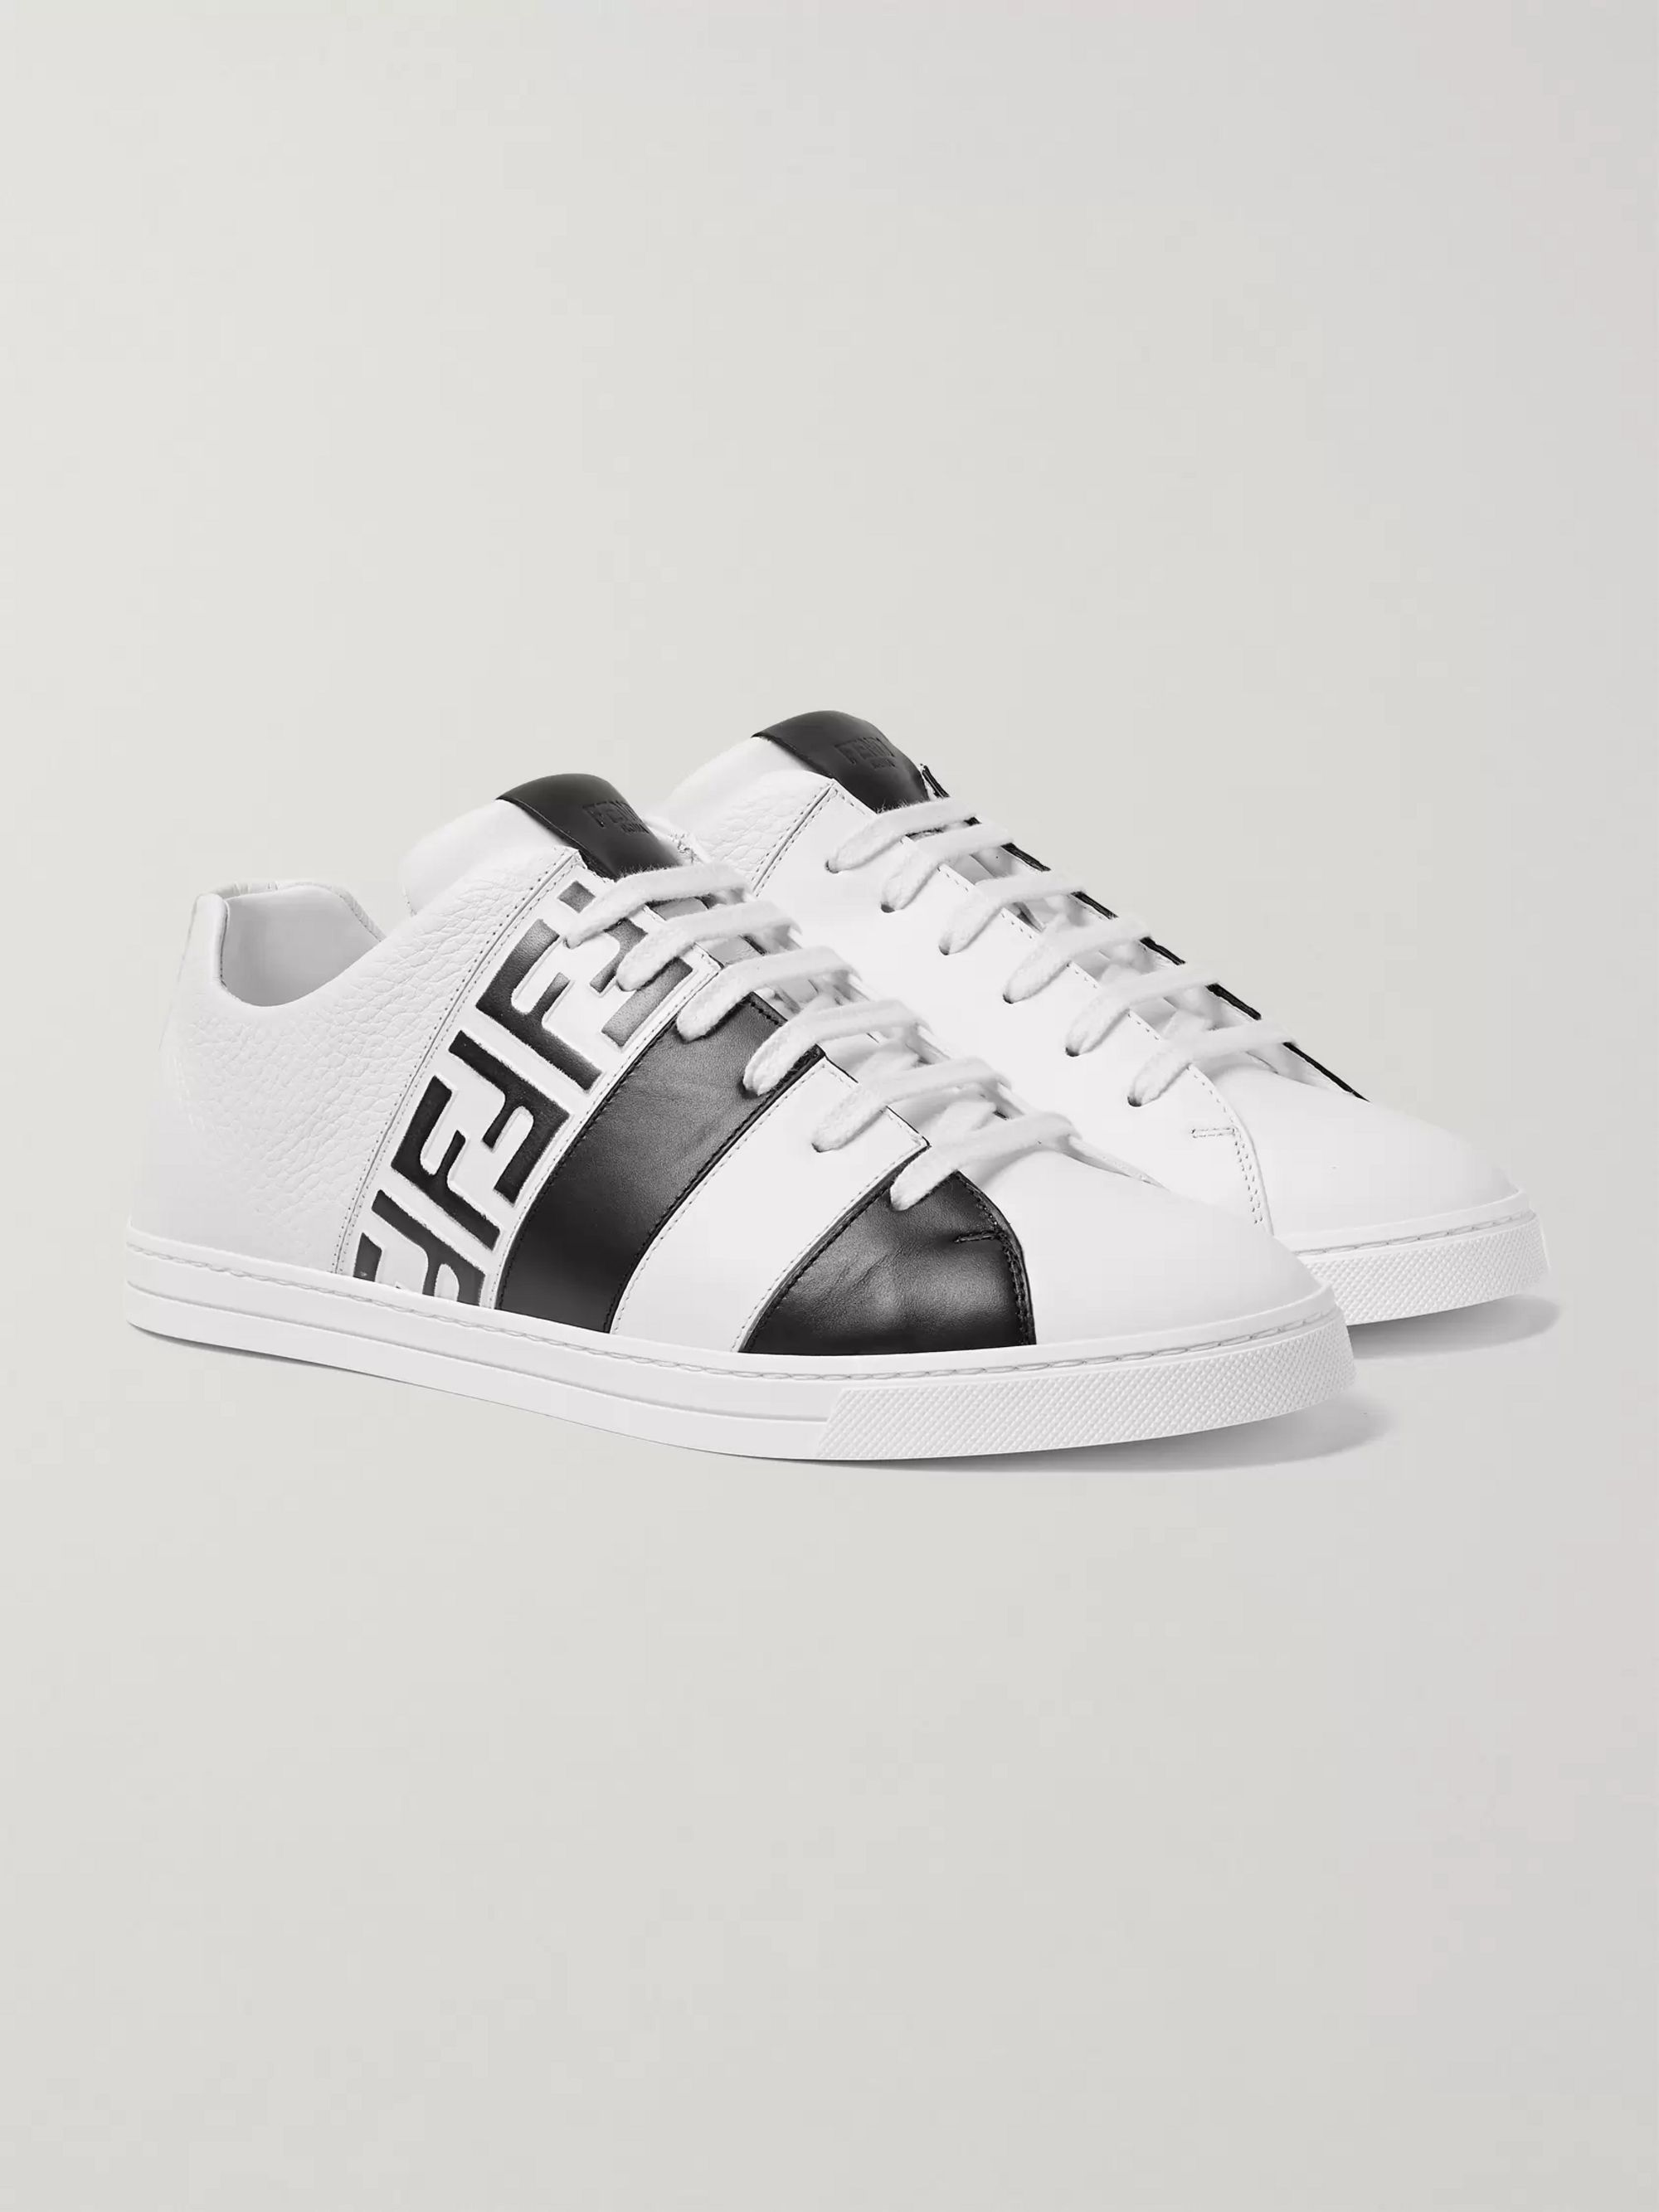 official photos 1bbea 1ed35 Logo-Print Leather Sneakers